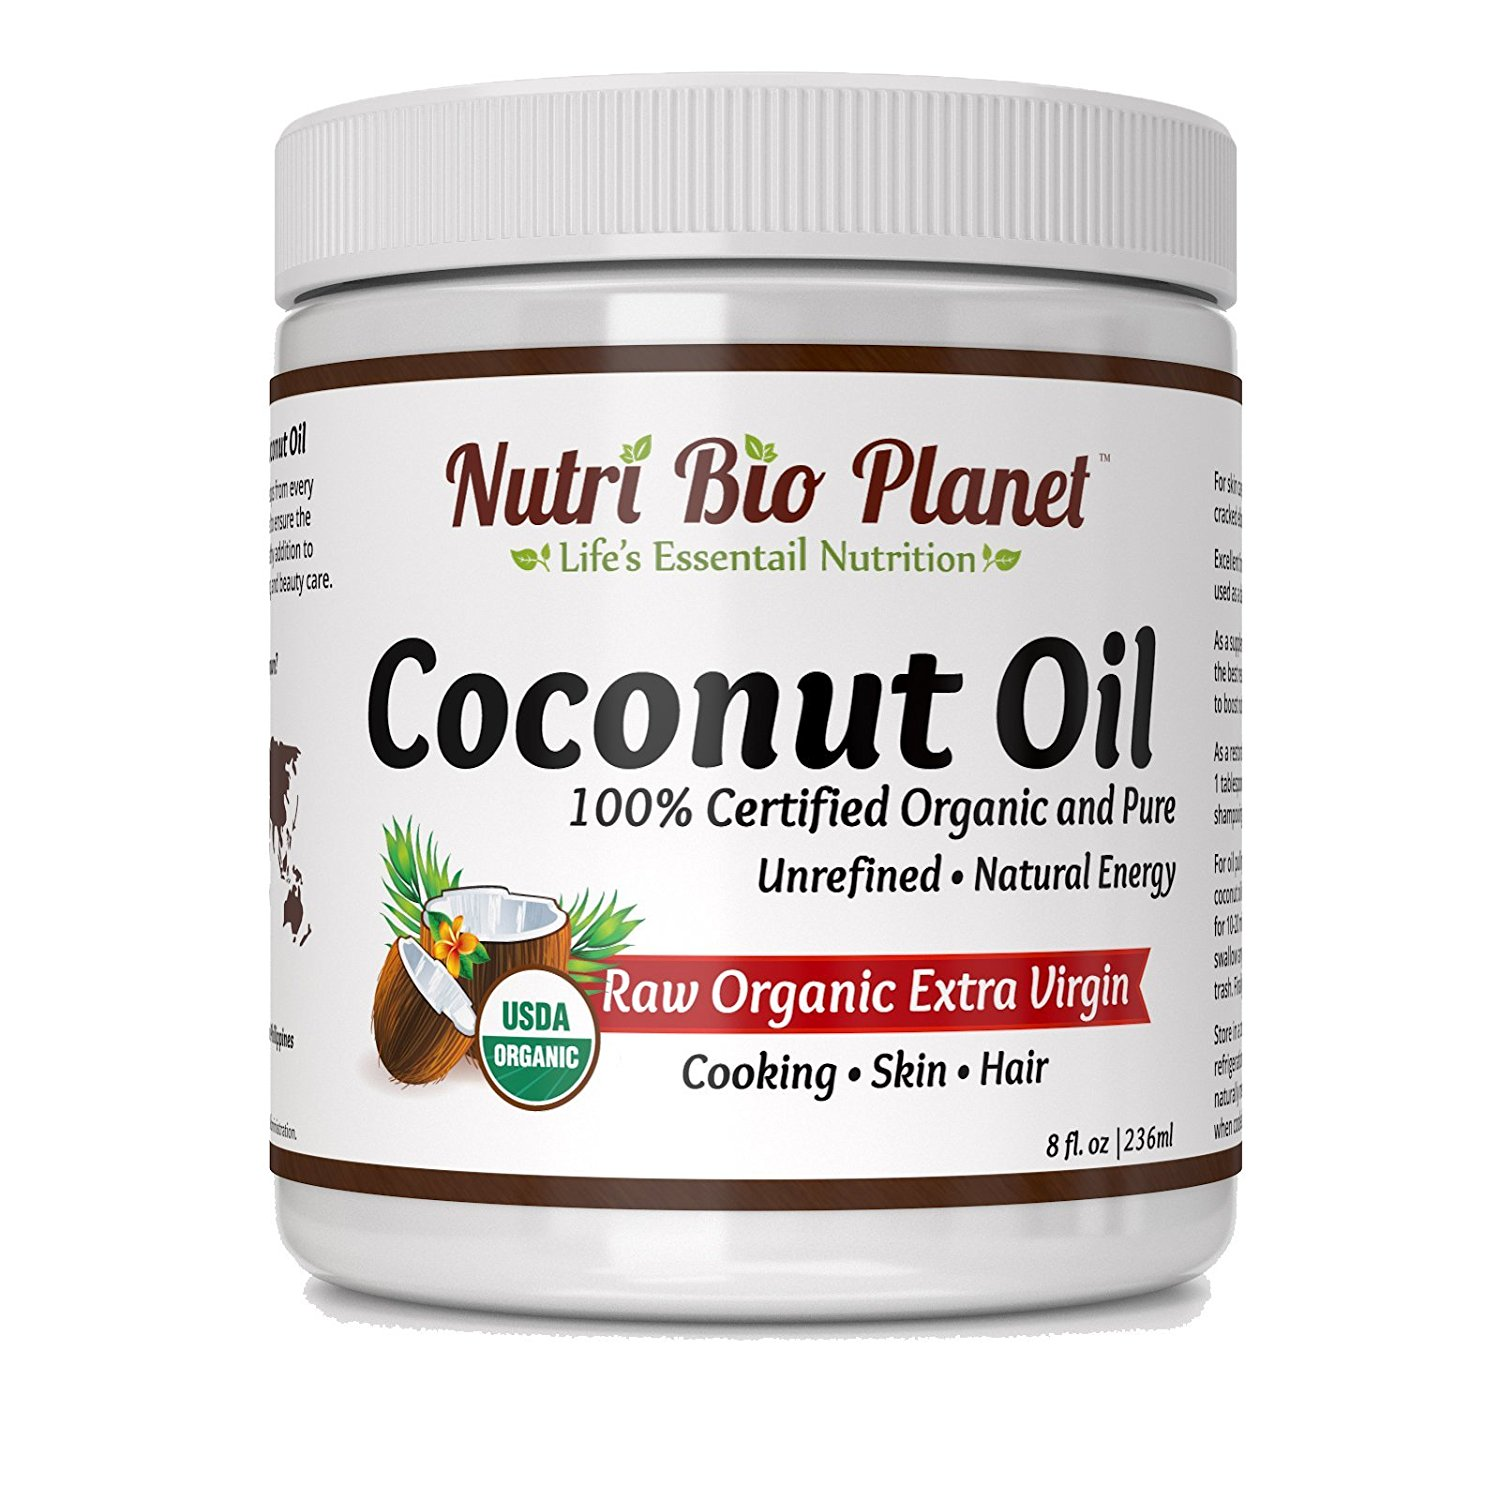 NutriBioPlanet Raw Organic Extra Virgin Coconut Oil